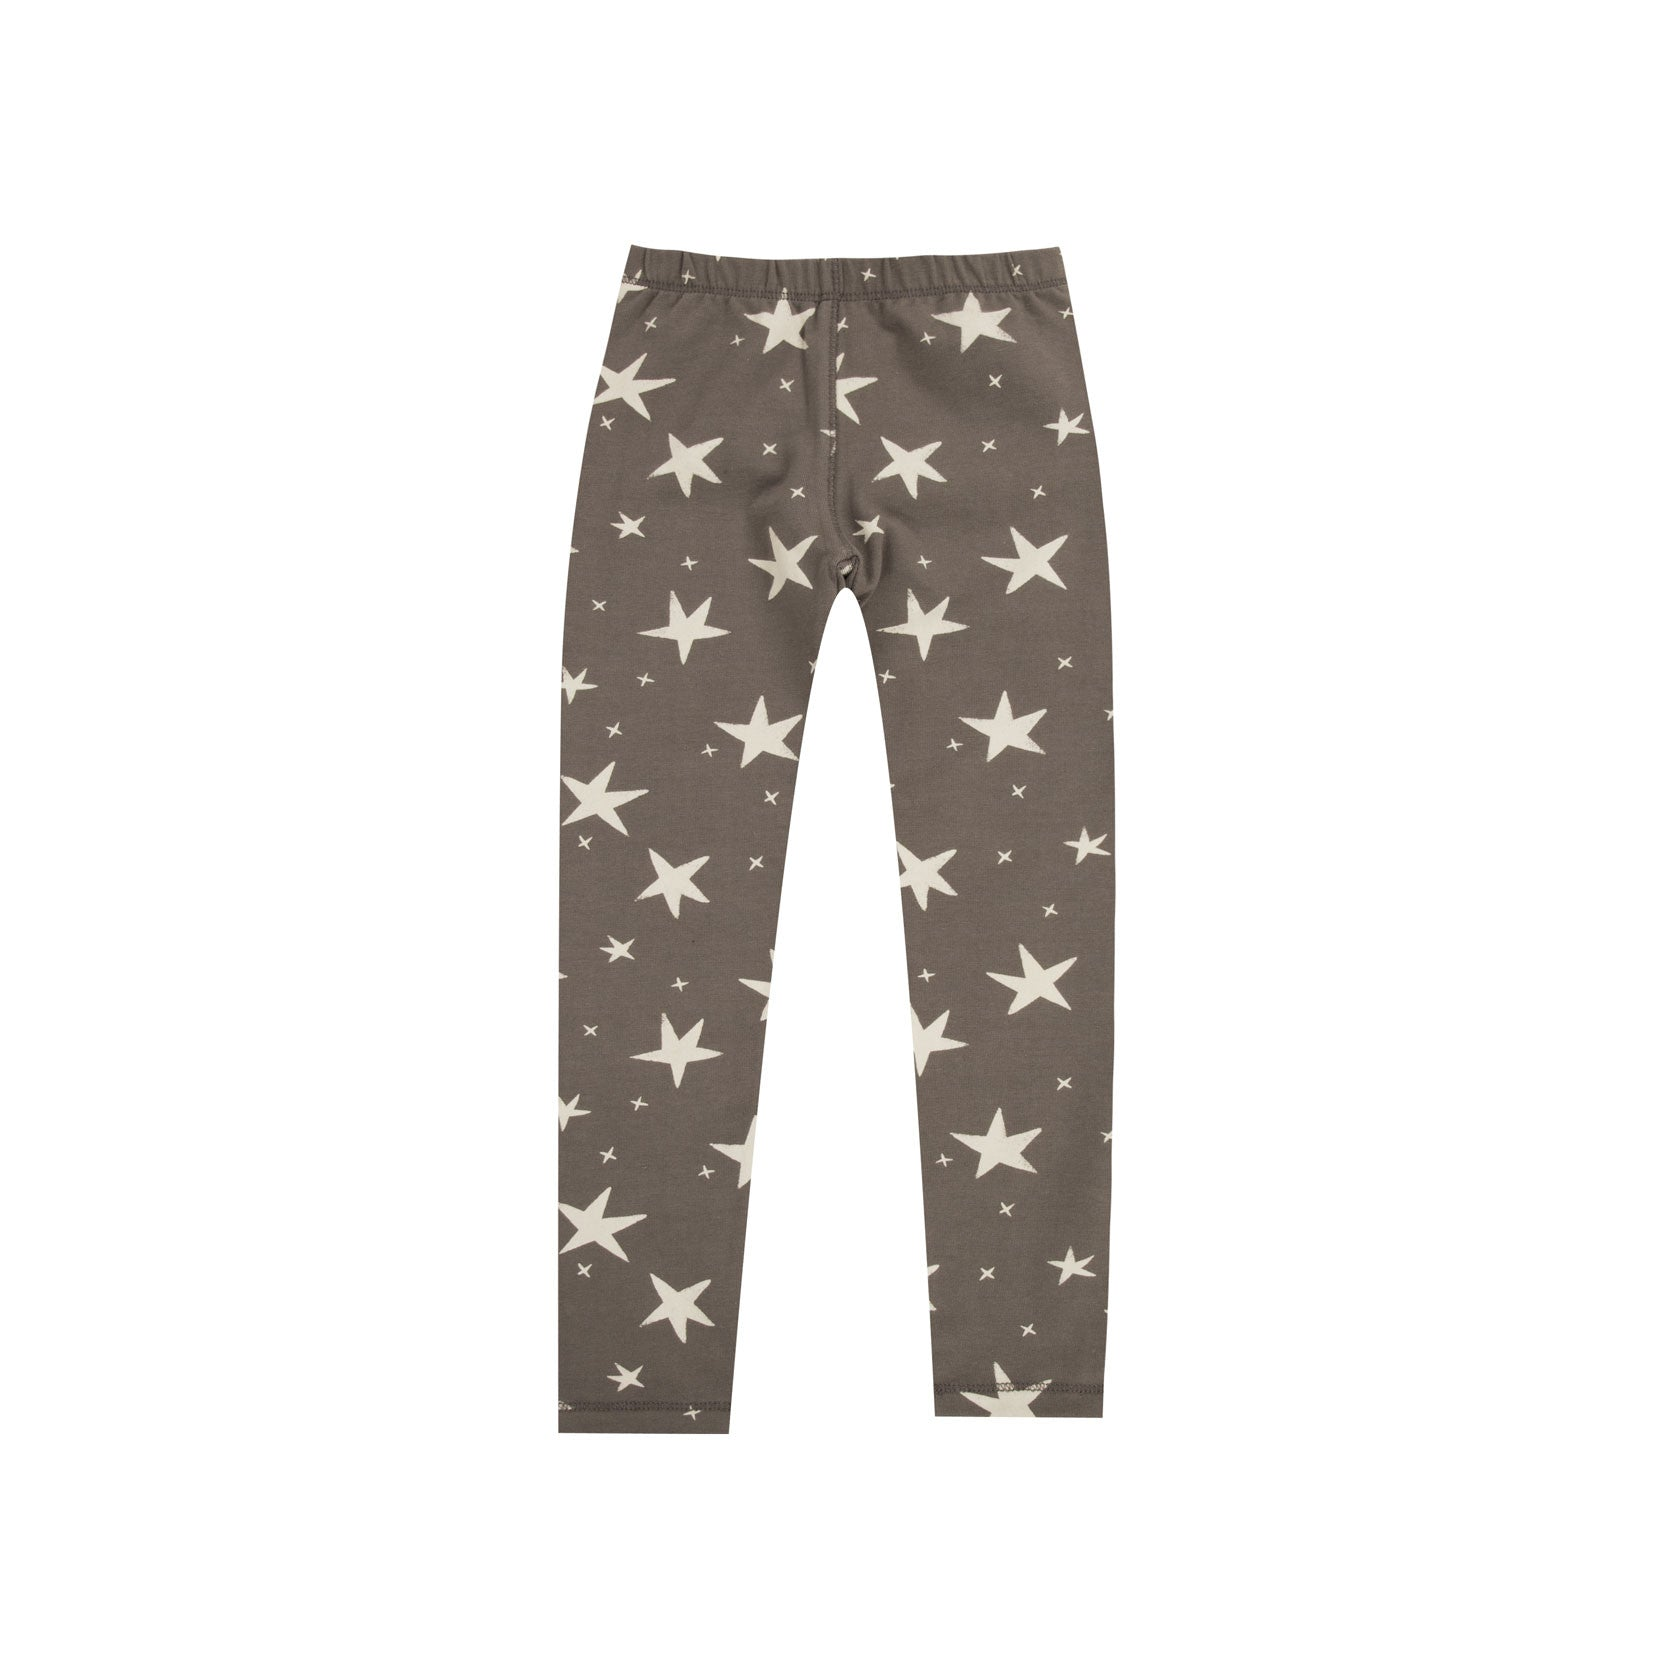 Rylee and Cru Stars Leggings - Ladida